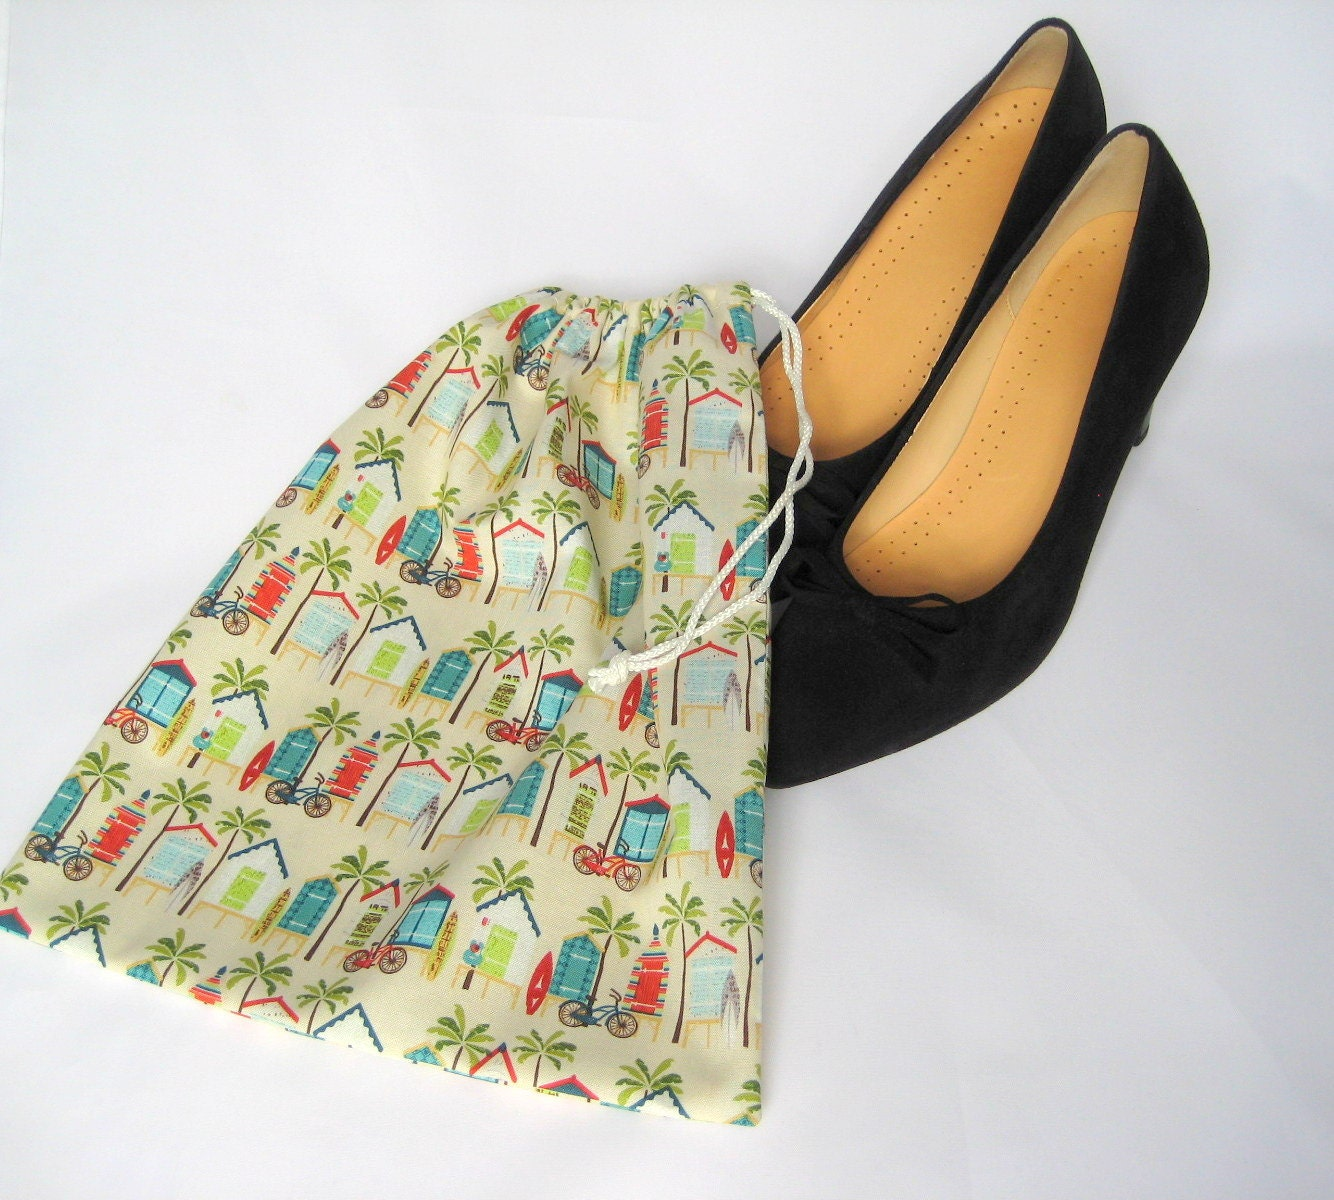 Drawstring Fabric Shoe Bag  Palm Tree and Beach Huts Print Shoe Storage Project BagCraft Bag